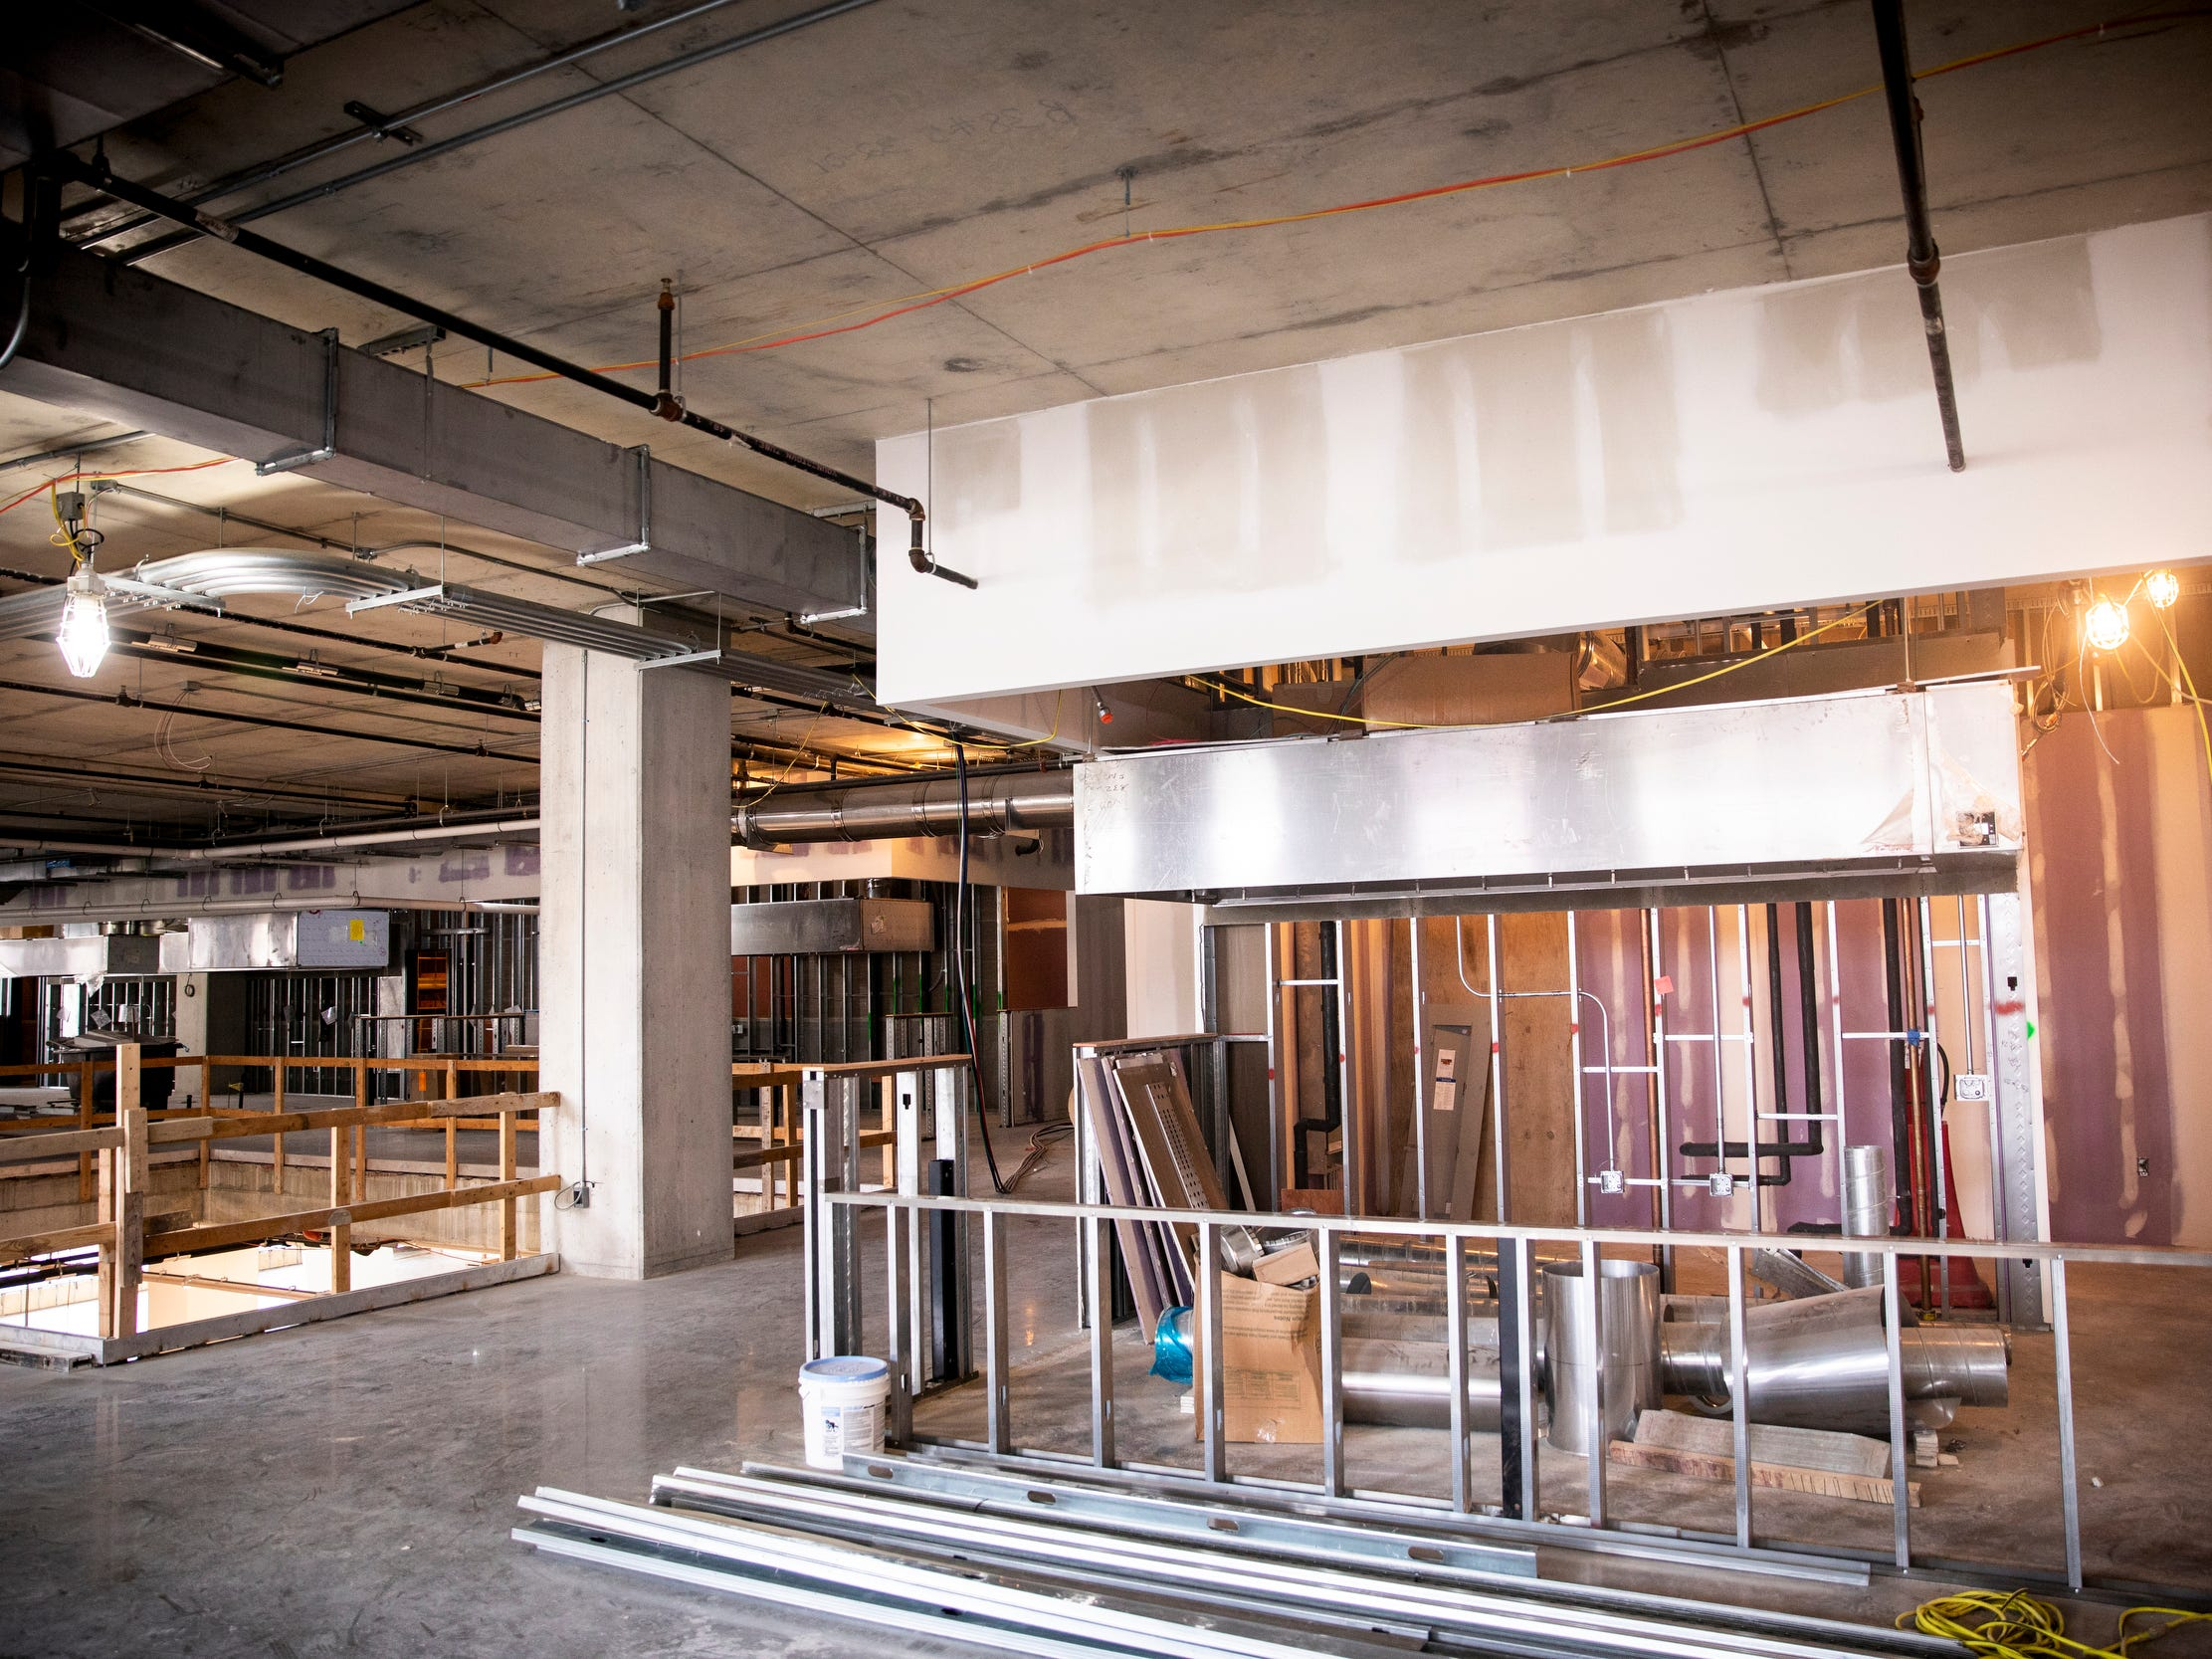 The Food Hall on the second floor will be occupied by five local vendors. There will be seating for approximate 100 people.